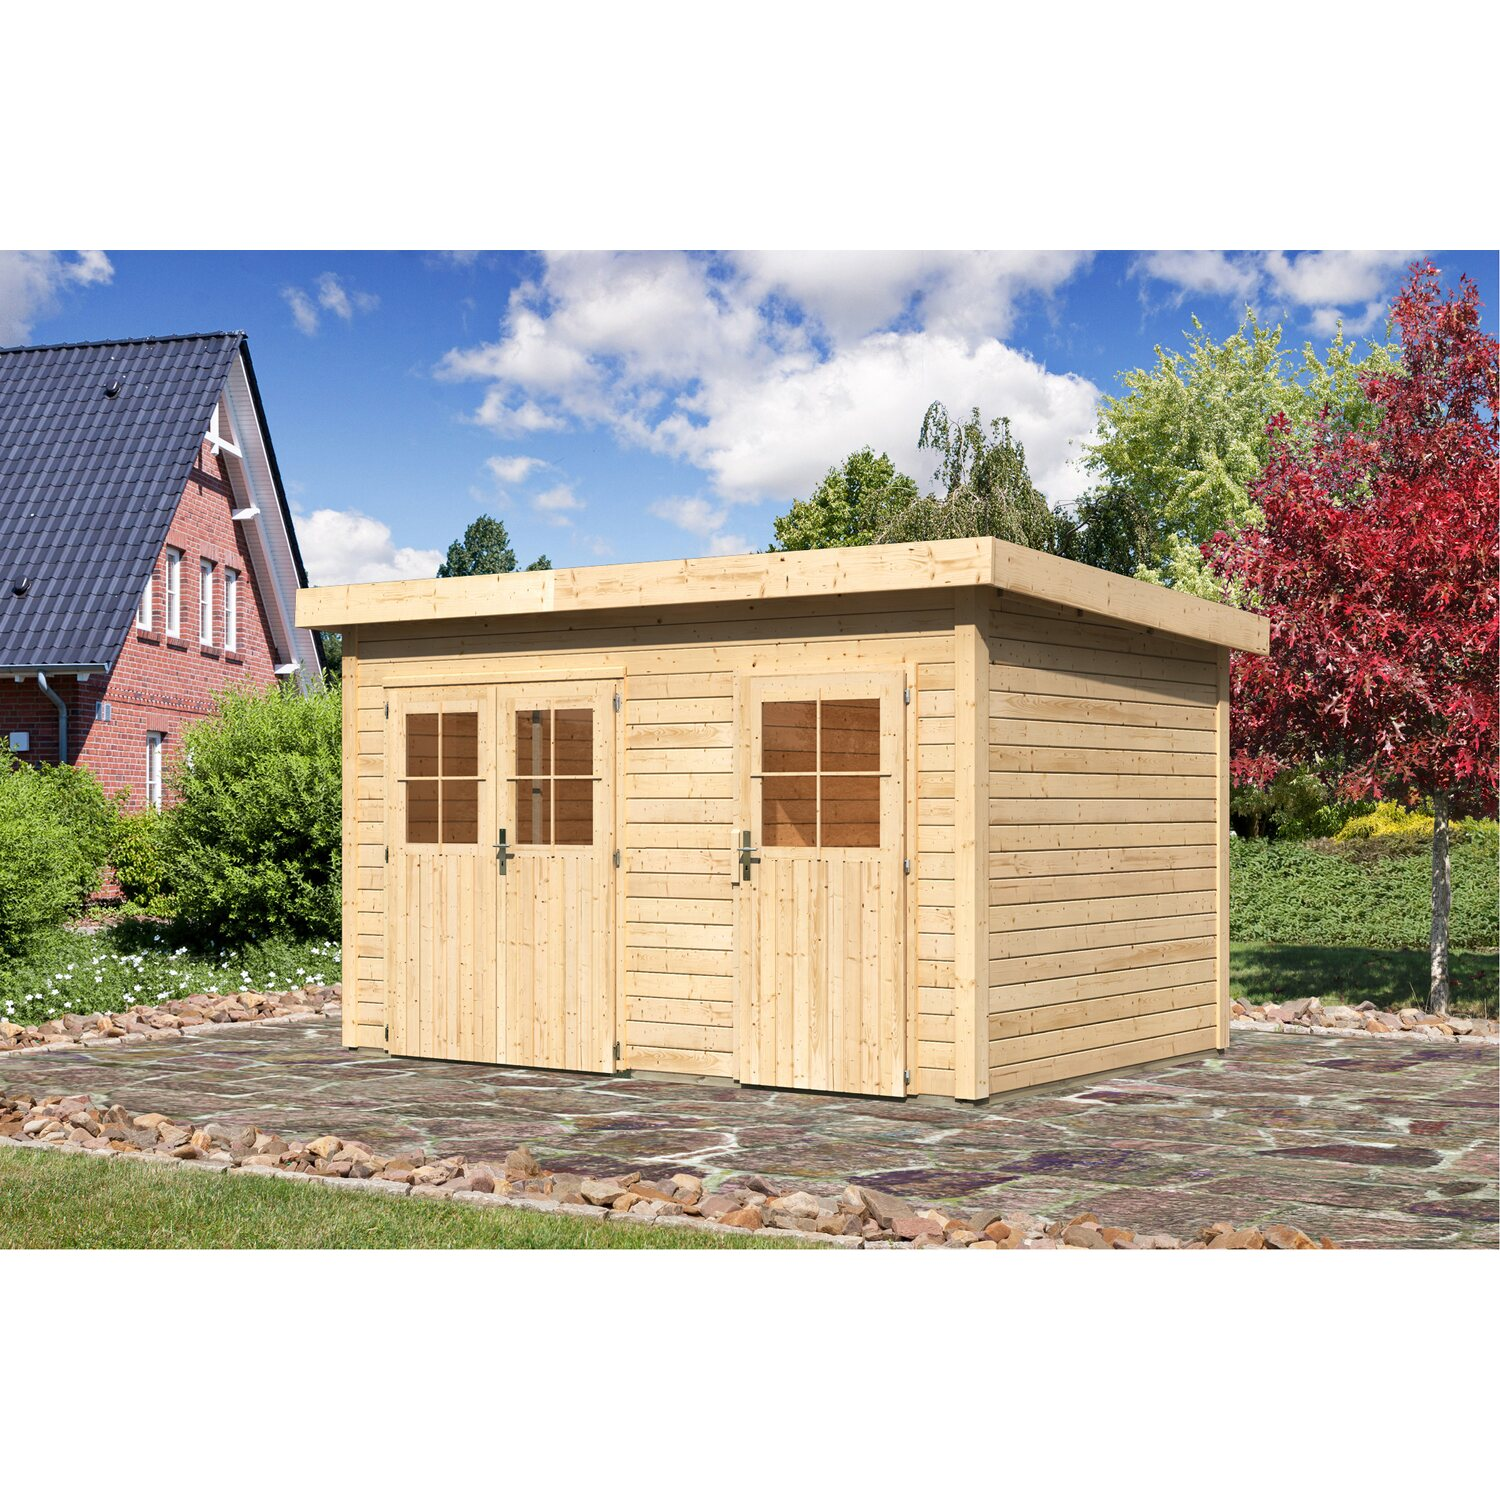 karibu holz gartenhaus skanderborg mit mittelwand boden u folie bxt 360x240cm kaufen bei obi. Black Bedroom Furniture Sets. Home Design Ideas